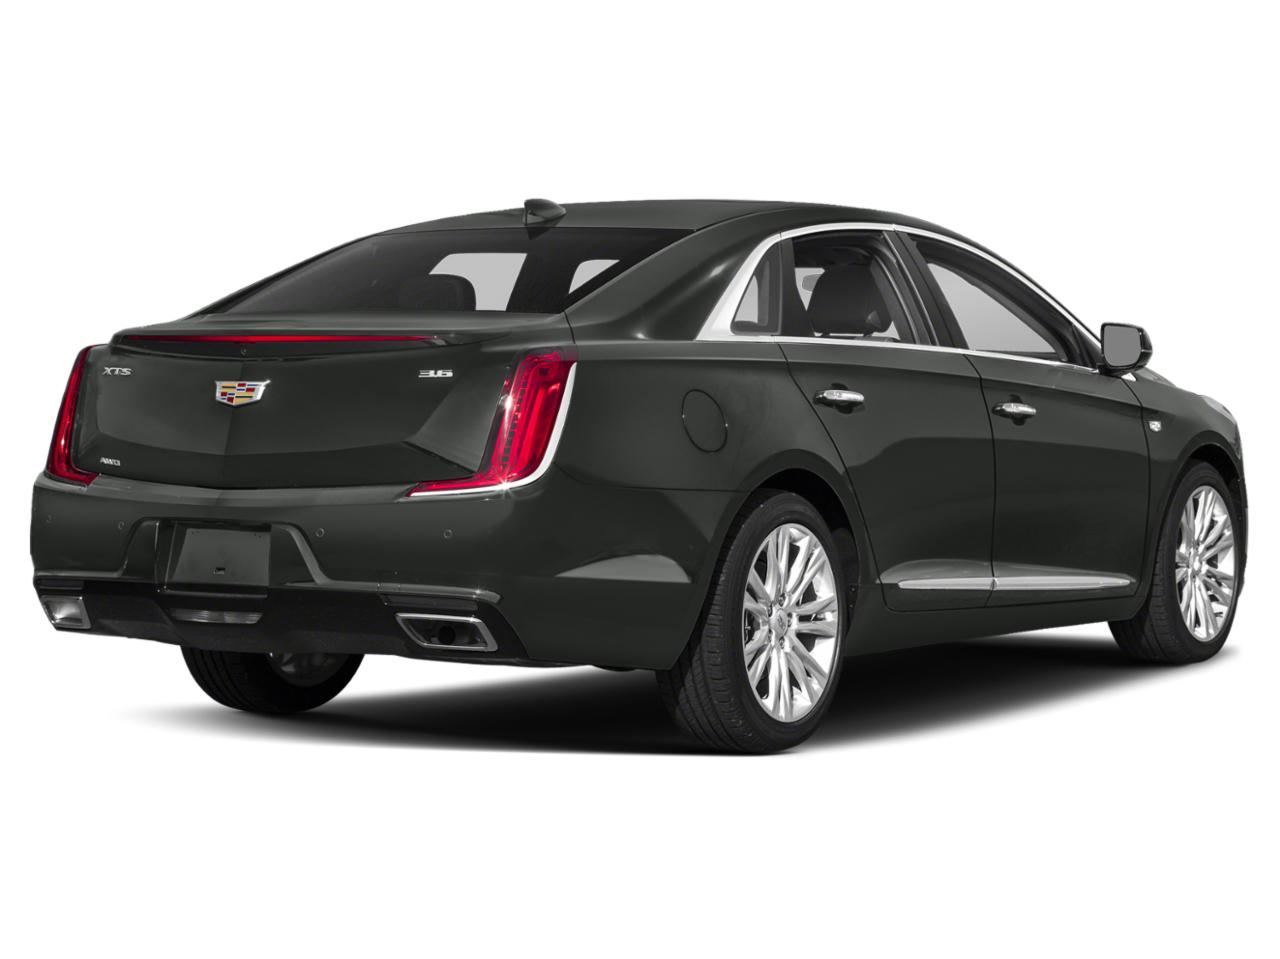 2019 Cadillac XTS for sale in Florence - 2G61M5S35K9154891 ...